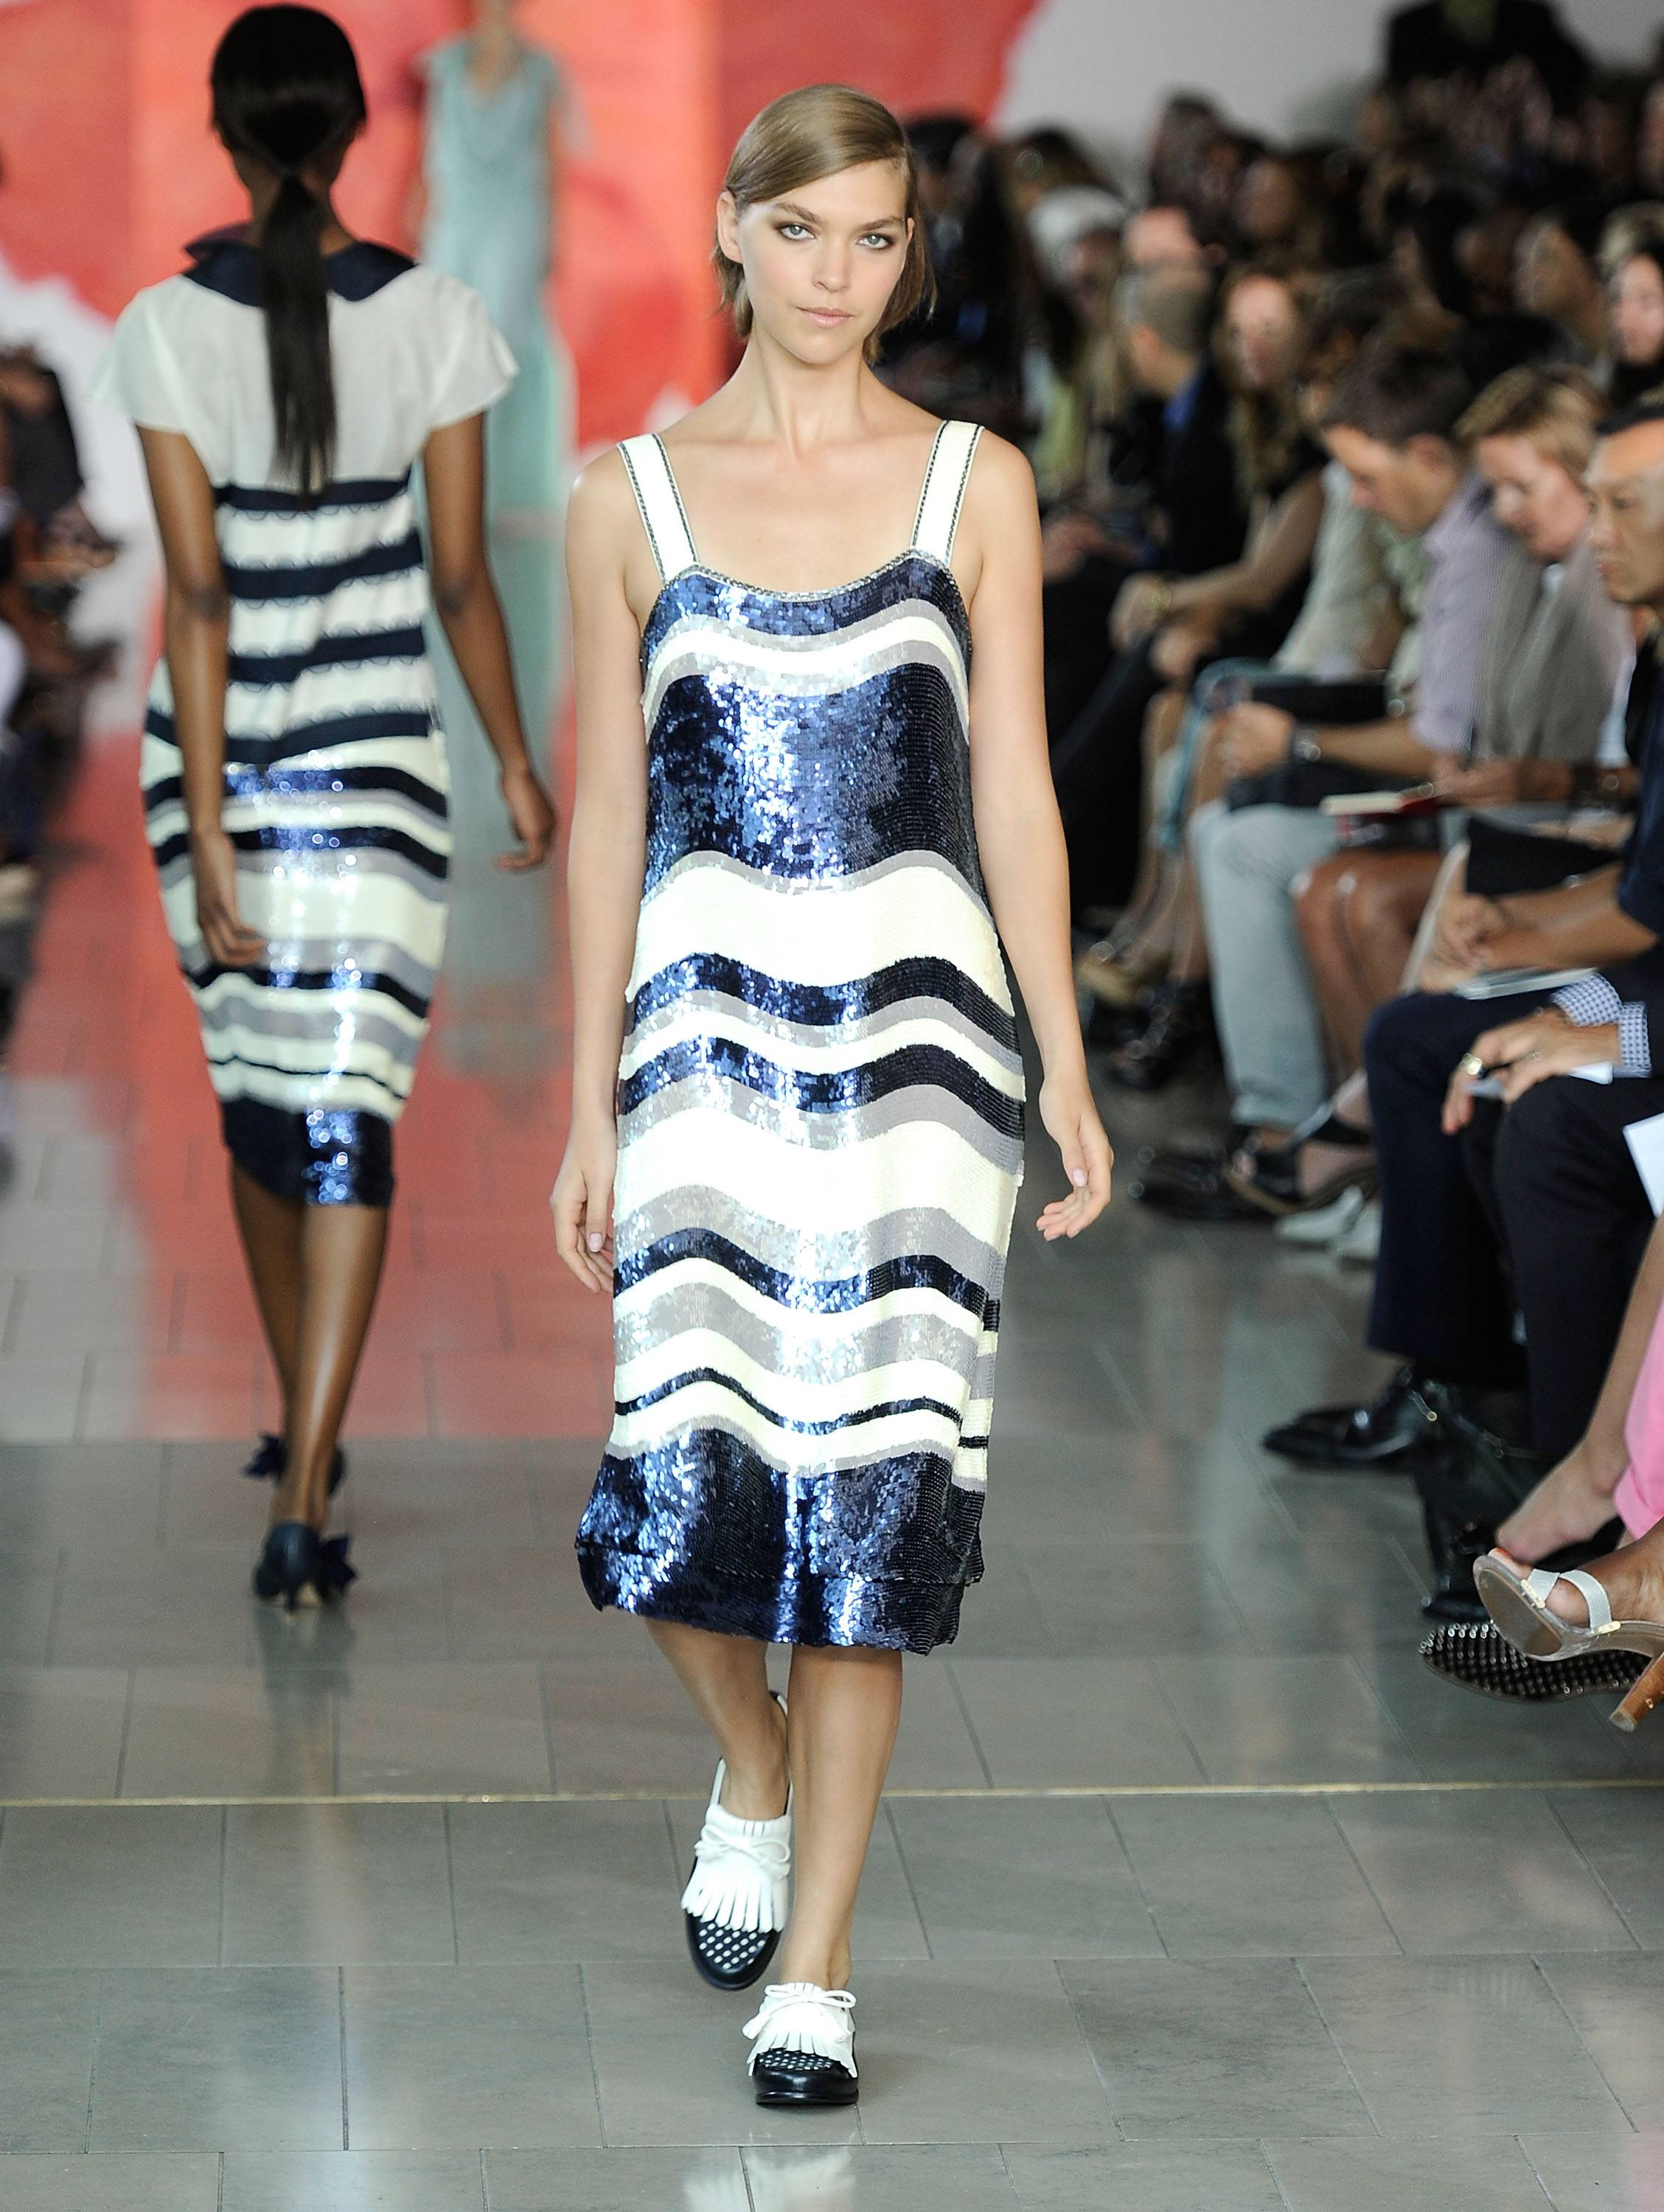 Tory Burch Runway Presentation 7, Mercedes Benz Fashion Week, s/s 2012